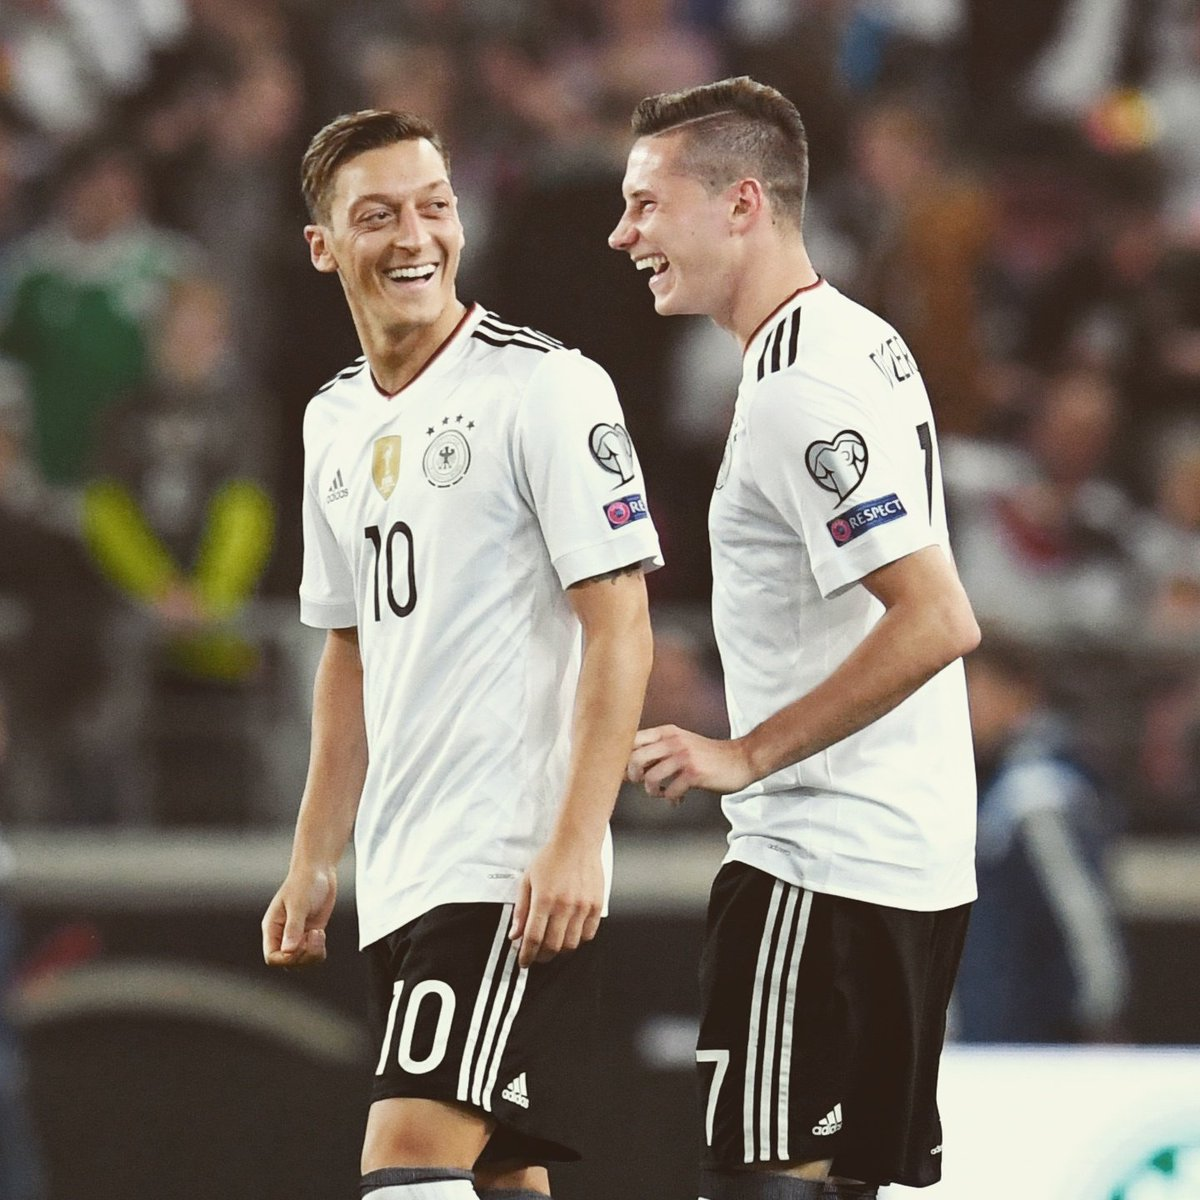 That's the way ...aha...aha...I like it!!! 🎶😊🇩🇪⚽⚽⚽ #NiceWin #Fun #HereToCreate #GERNOR